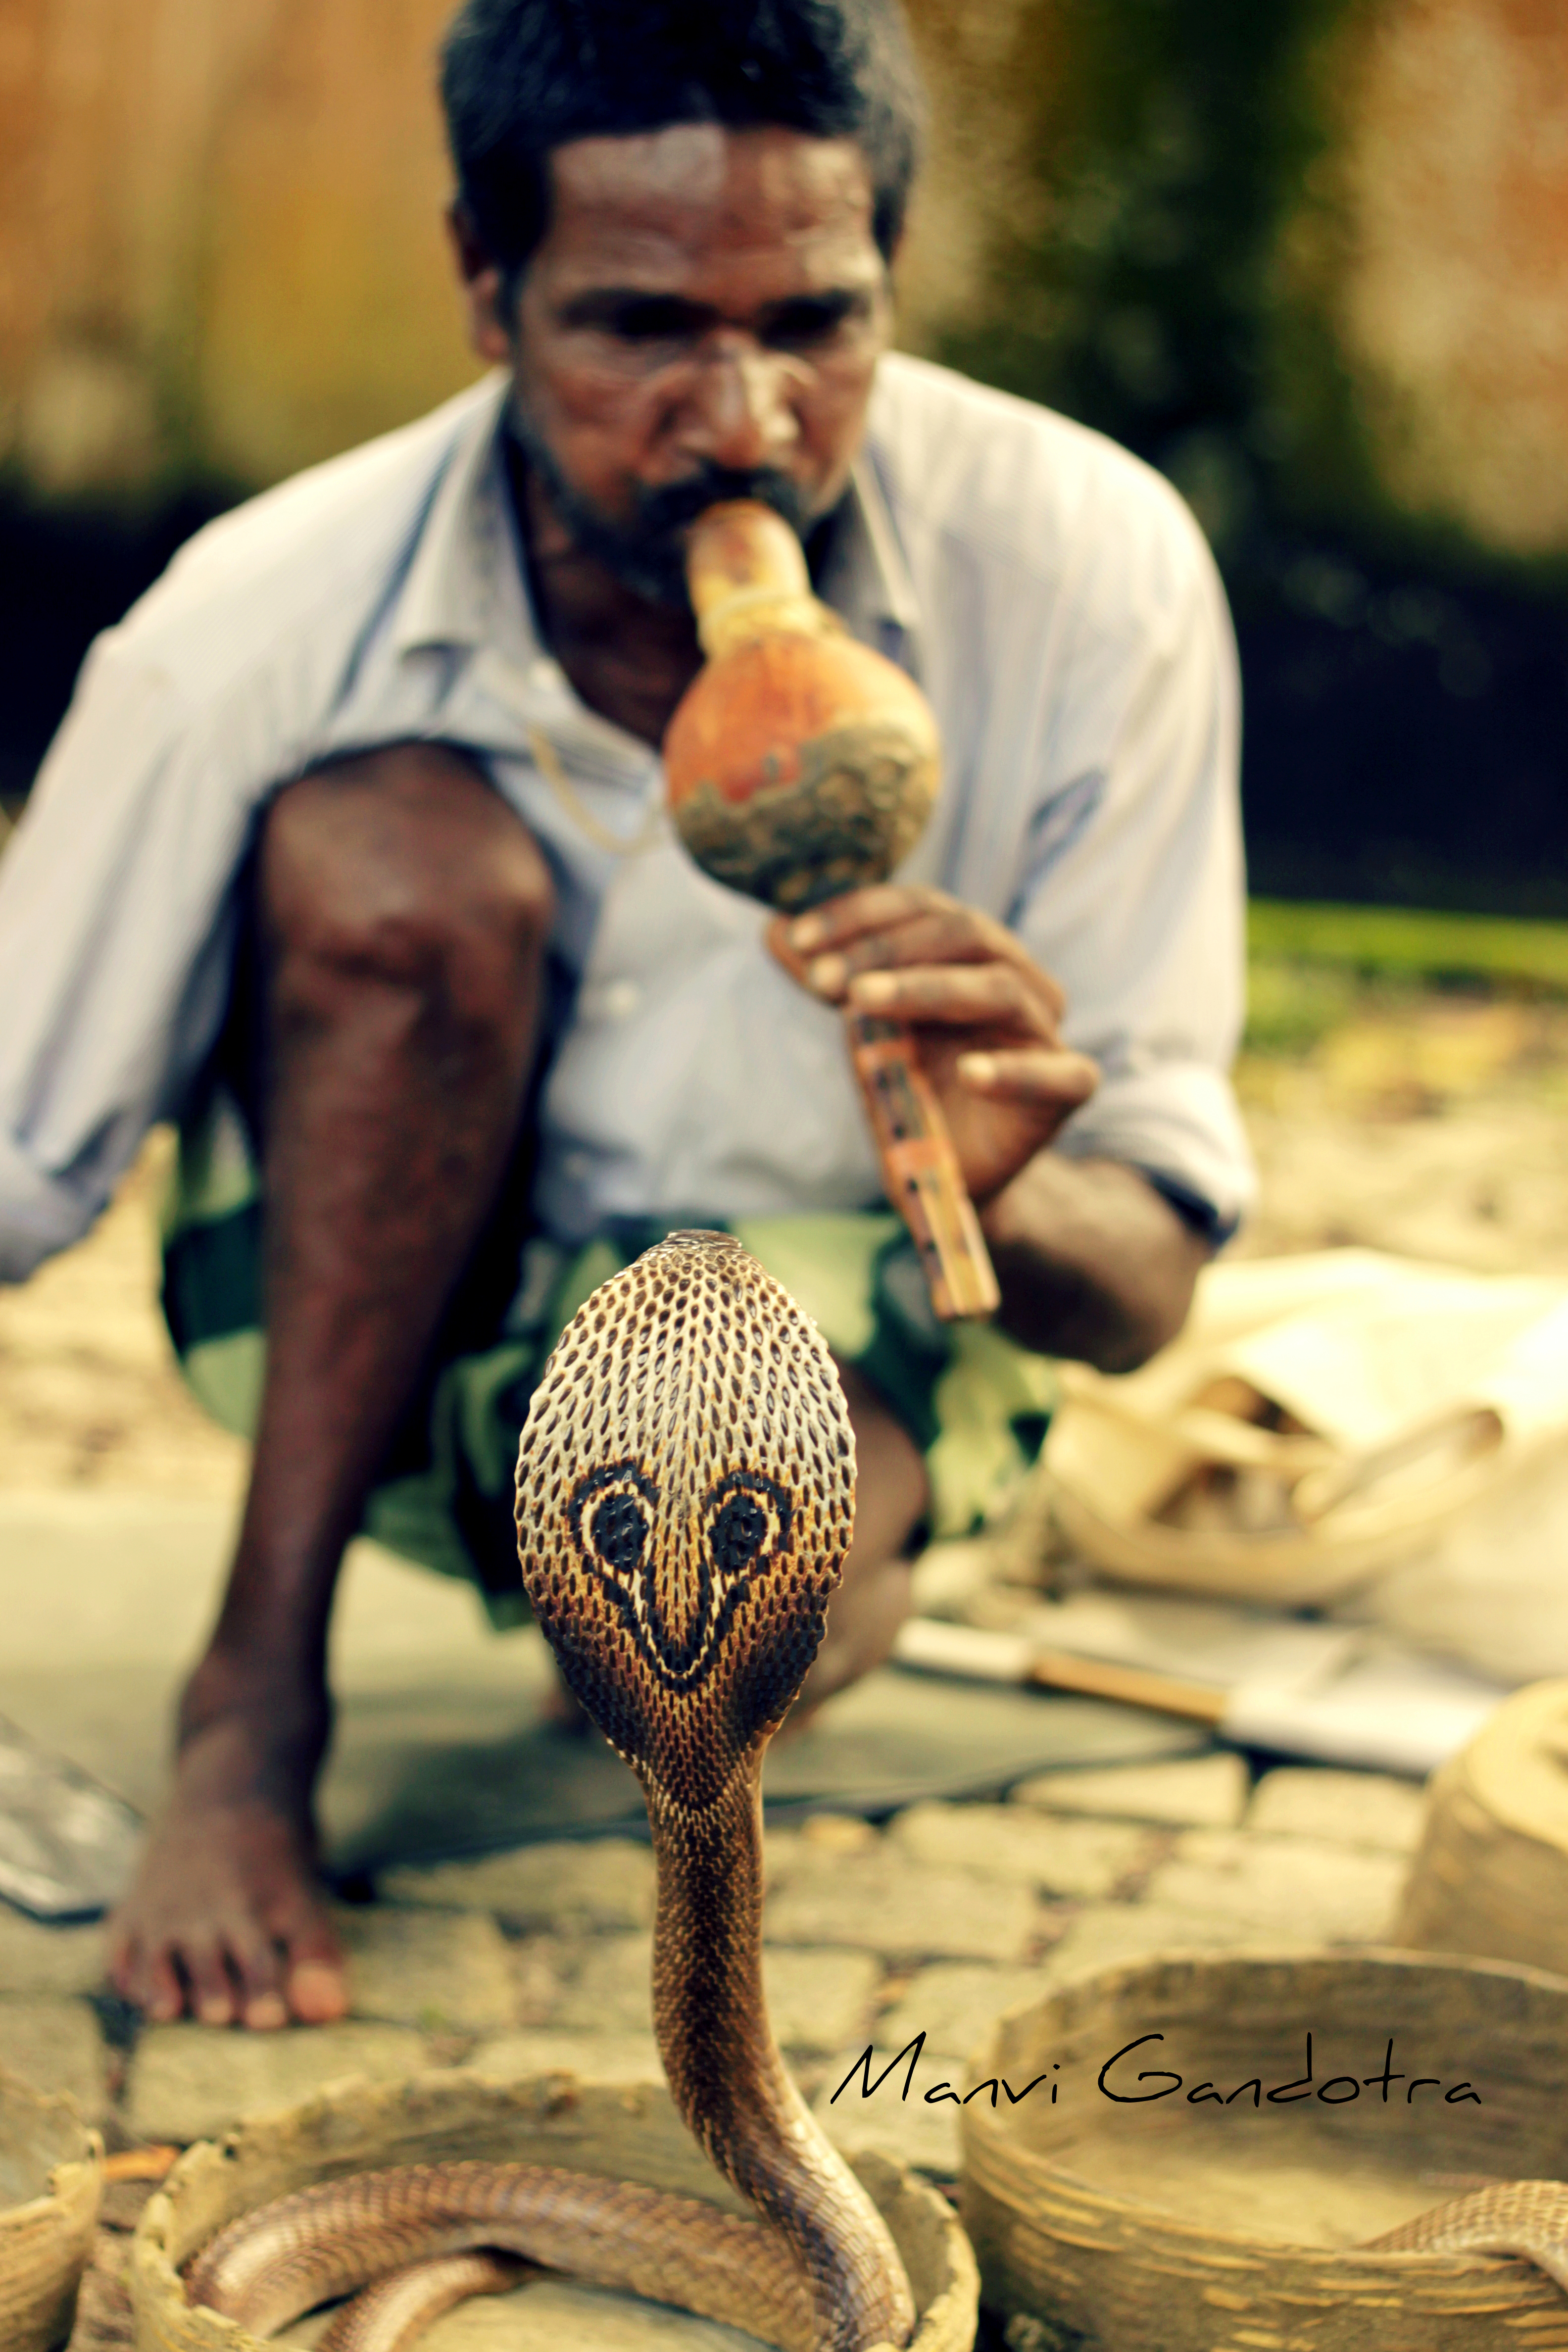 The Charmer Pages Lisa Kudrow For More: The Indian Snake Charmer